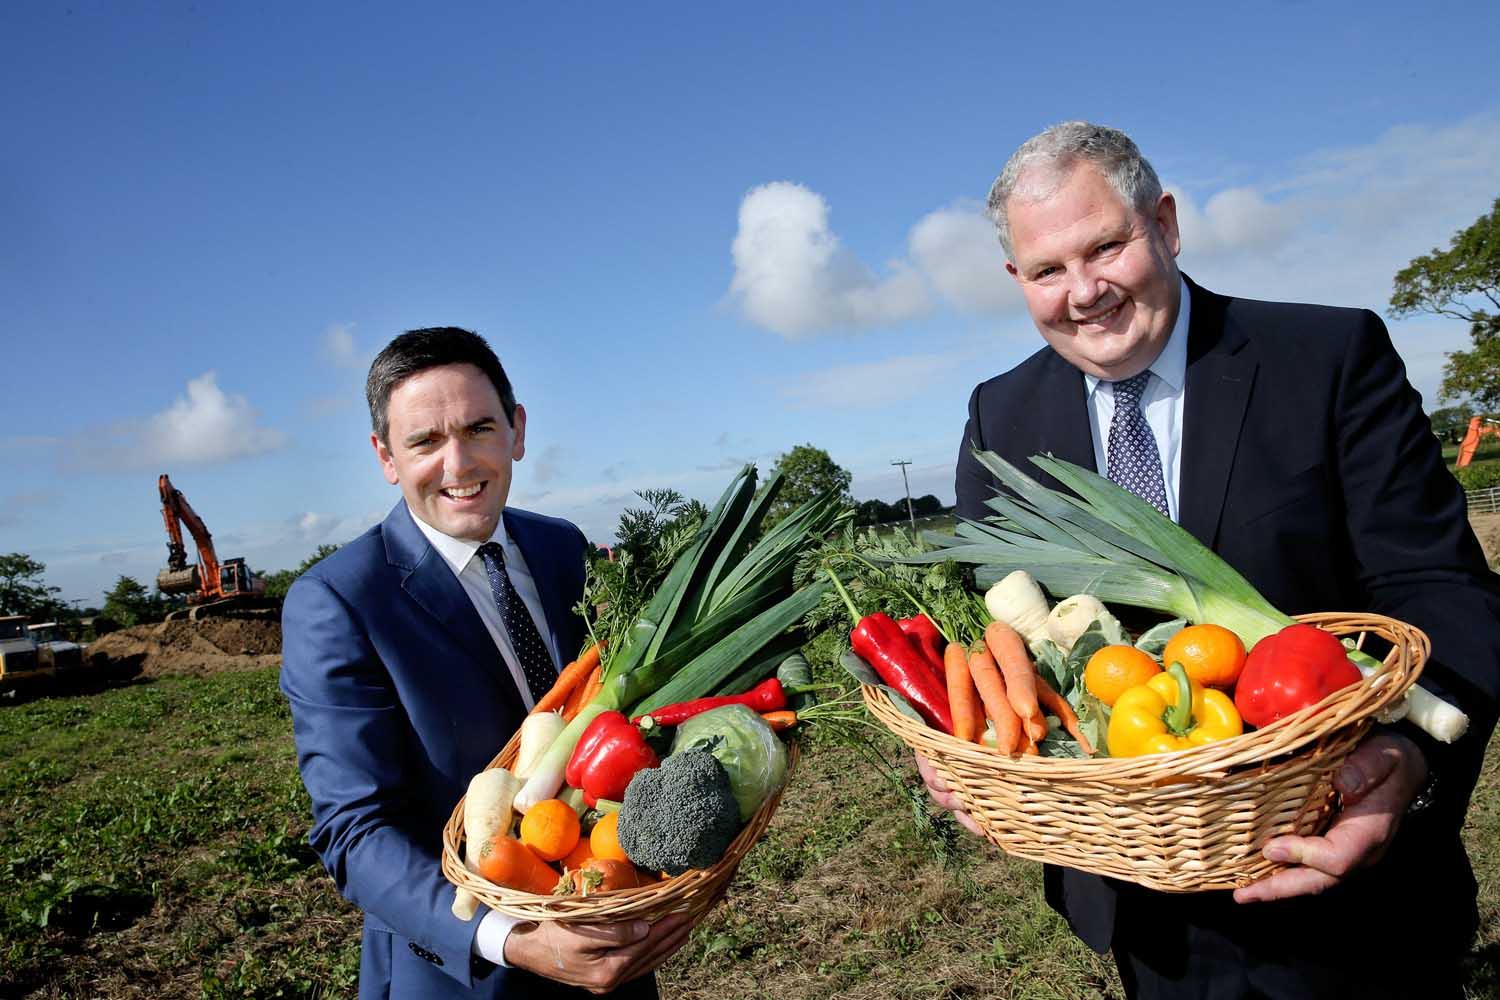 17/08/2015 NO REPRO FEE, MAXWELLS DUBLIN. 100 NEW JOBS AND 100 CONSTRUCTION JOBS TO BE CREATED BY BALLYMAGUIRE FOODS IN NEW WORLD CLASS FOOD PLANT Pic shows: (l to r) Edward Spelman, MD of Ballymaguire Foods with Michael Hoey Chairman Ballymaguire Foods on site where work has started on the new food plant. !00 Jobs to be housed in new state of the art 70,000 sq ft food plant which will nearly treble production for the UK market and the large catering sector . Ballymaguire Foods currently employs 150 people in Lusk and produces 150,000 meals a year . 100 new jobs are to be based in a new state of the art food plant created by Lusk based Ballymaguire Foods. The new jobs which will greatly bolster the existing workforce of 150 will be worth just over €4m to thelocal economy and will include graduate positions in sales and marketing as well as food scientists and technicians, R+D, chefs, cooks and general operatives with a further 100 jobs being generated in the construction of the new food plant which will take nine months to complete. PIC: NO FEE, MAXWELLS. For more info Brian Purcell Big Picture Communications +353 87 9678921 brian@bpcommunications.ie